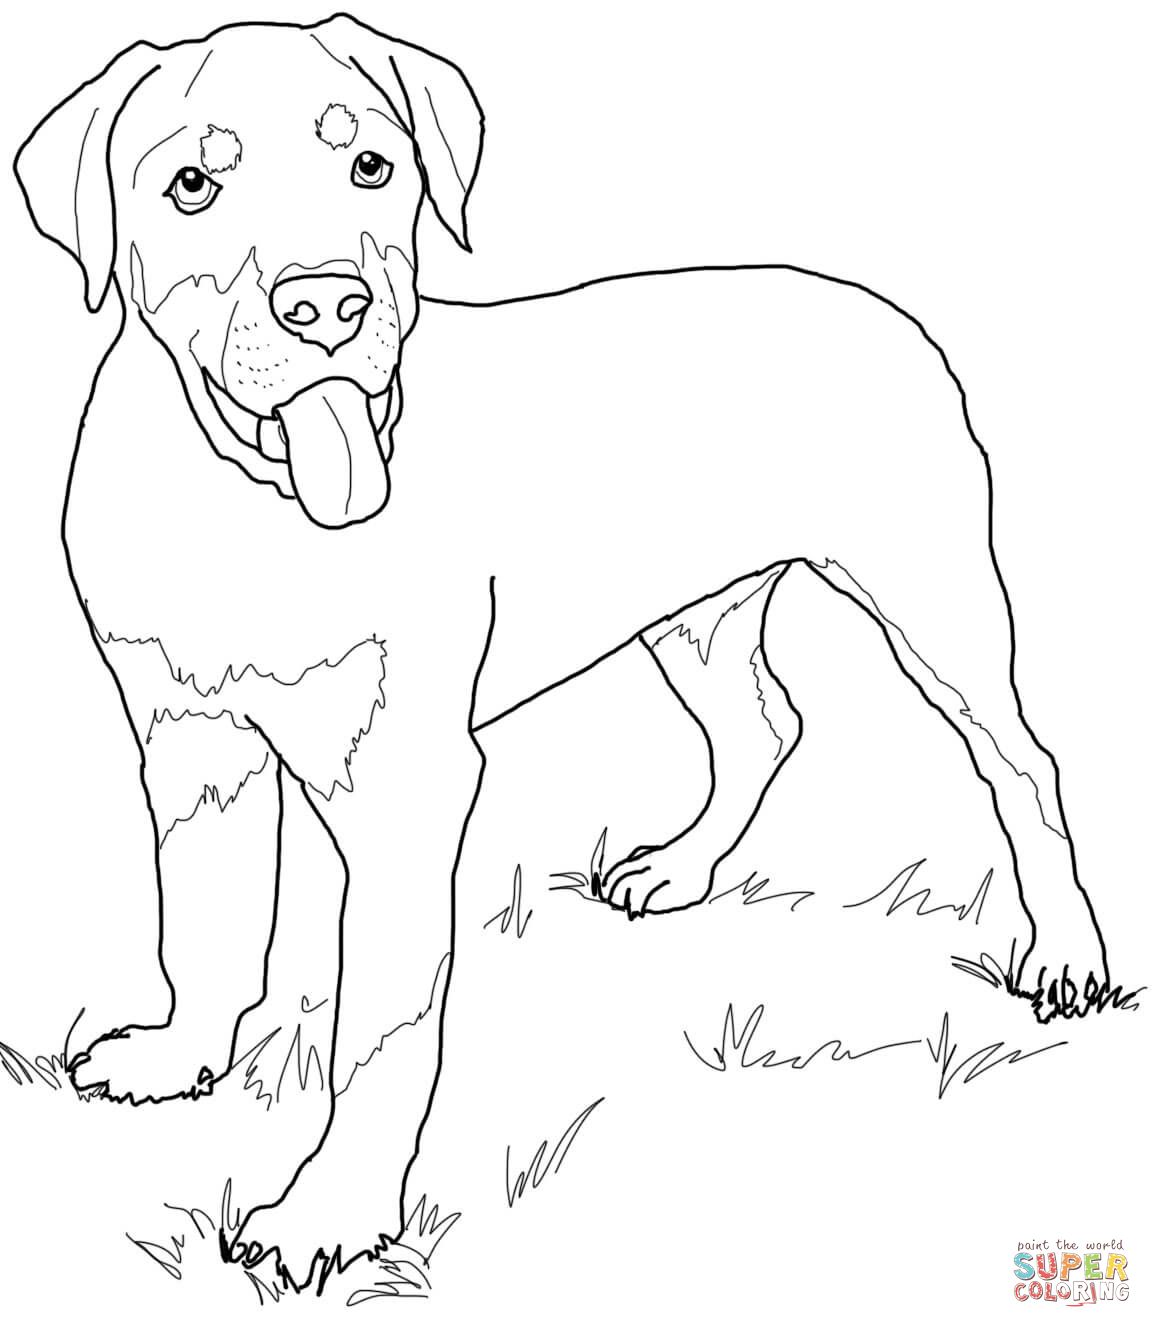 Rottweiler Puppy Puppy Coloring Pages Dog Coloring Page Rottweiler Puppies